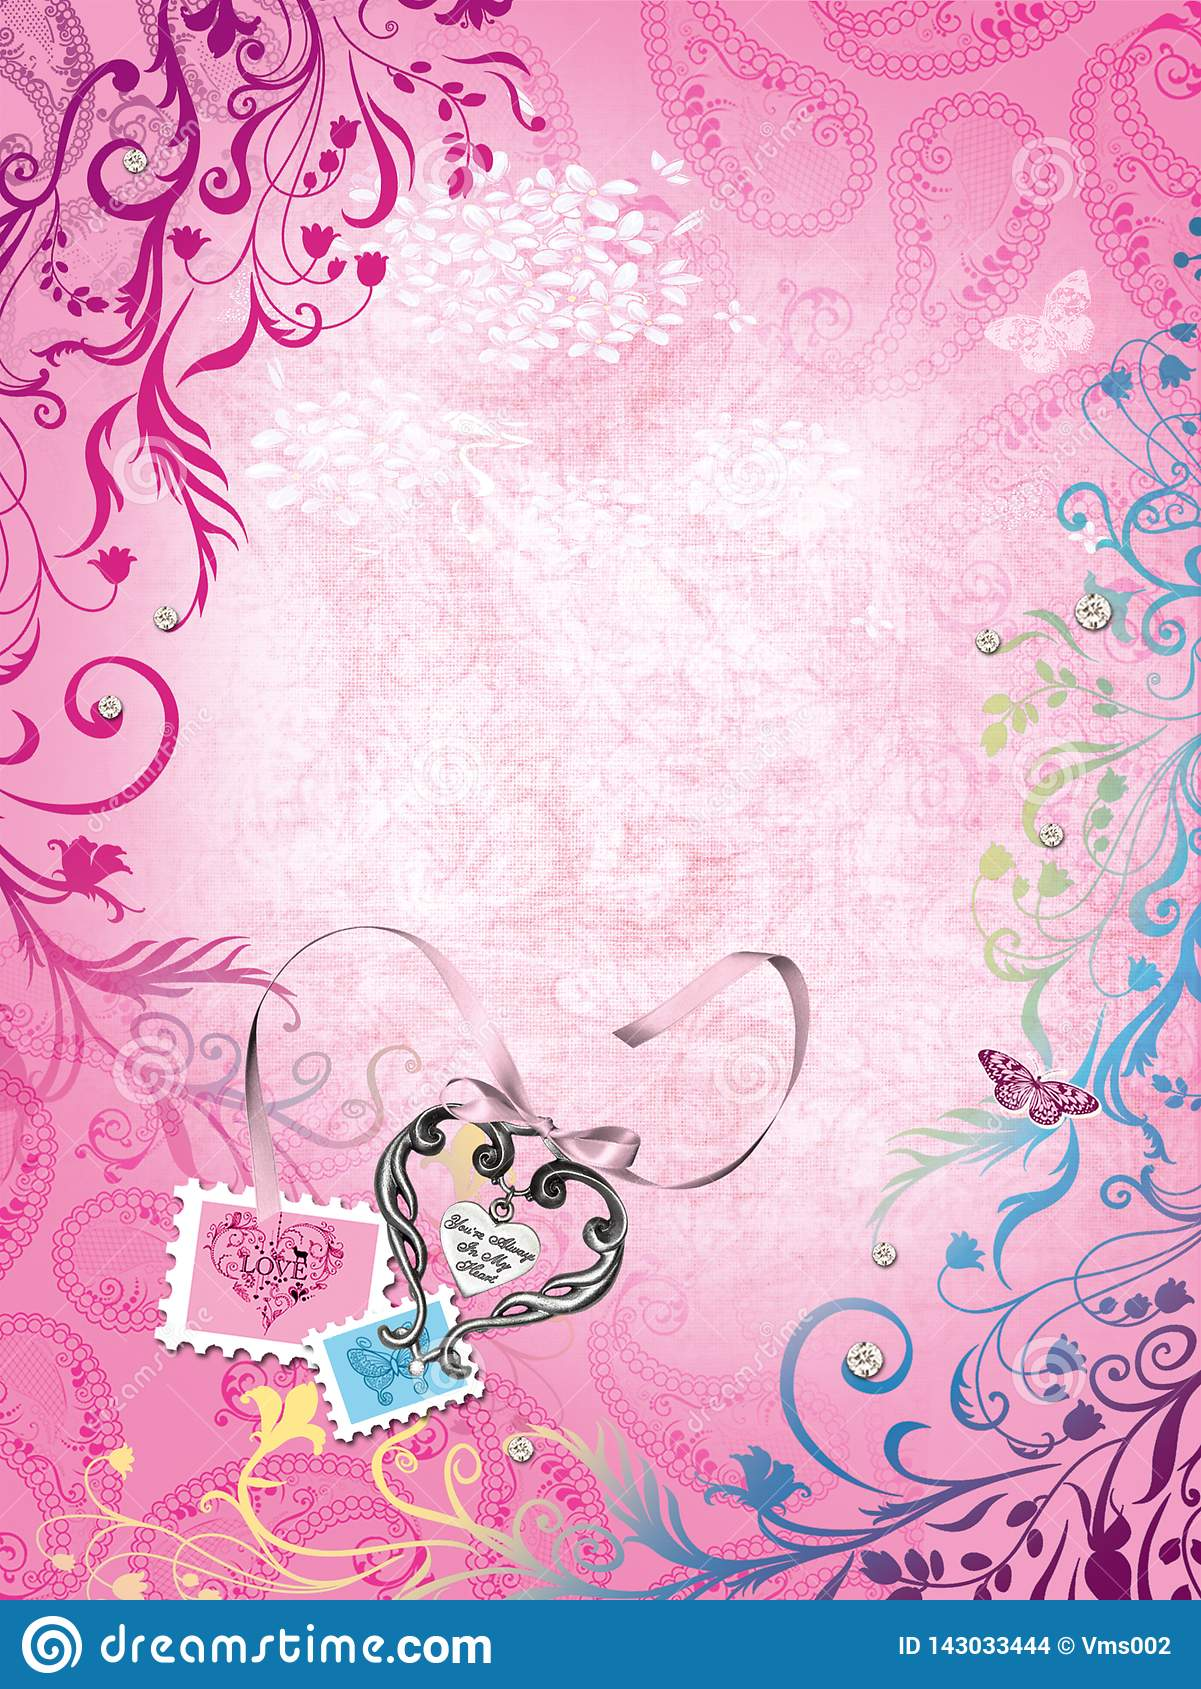 Background For Girls Hearts And Stamps Stock Illustration Illustration Of Flora Girls 143033444 You can explore in this category and download free pink background photos. https www dreamstime com background girls hearts stamps butterfly pink delicate design cute backgrounds image143033444